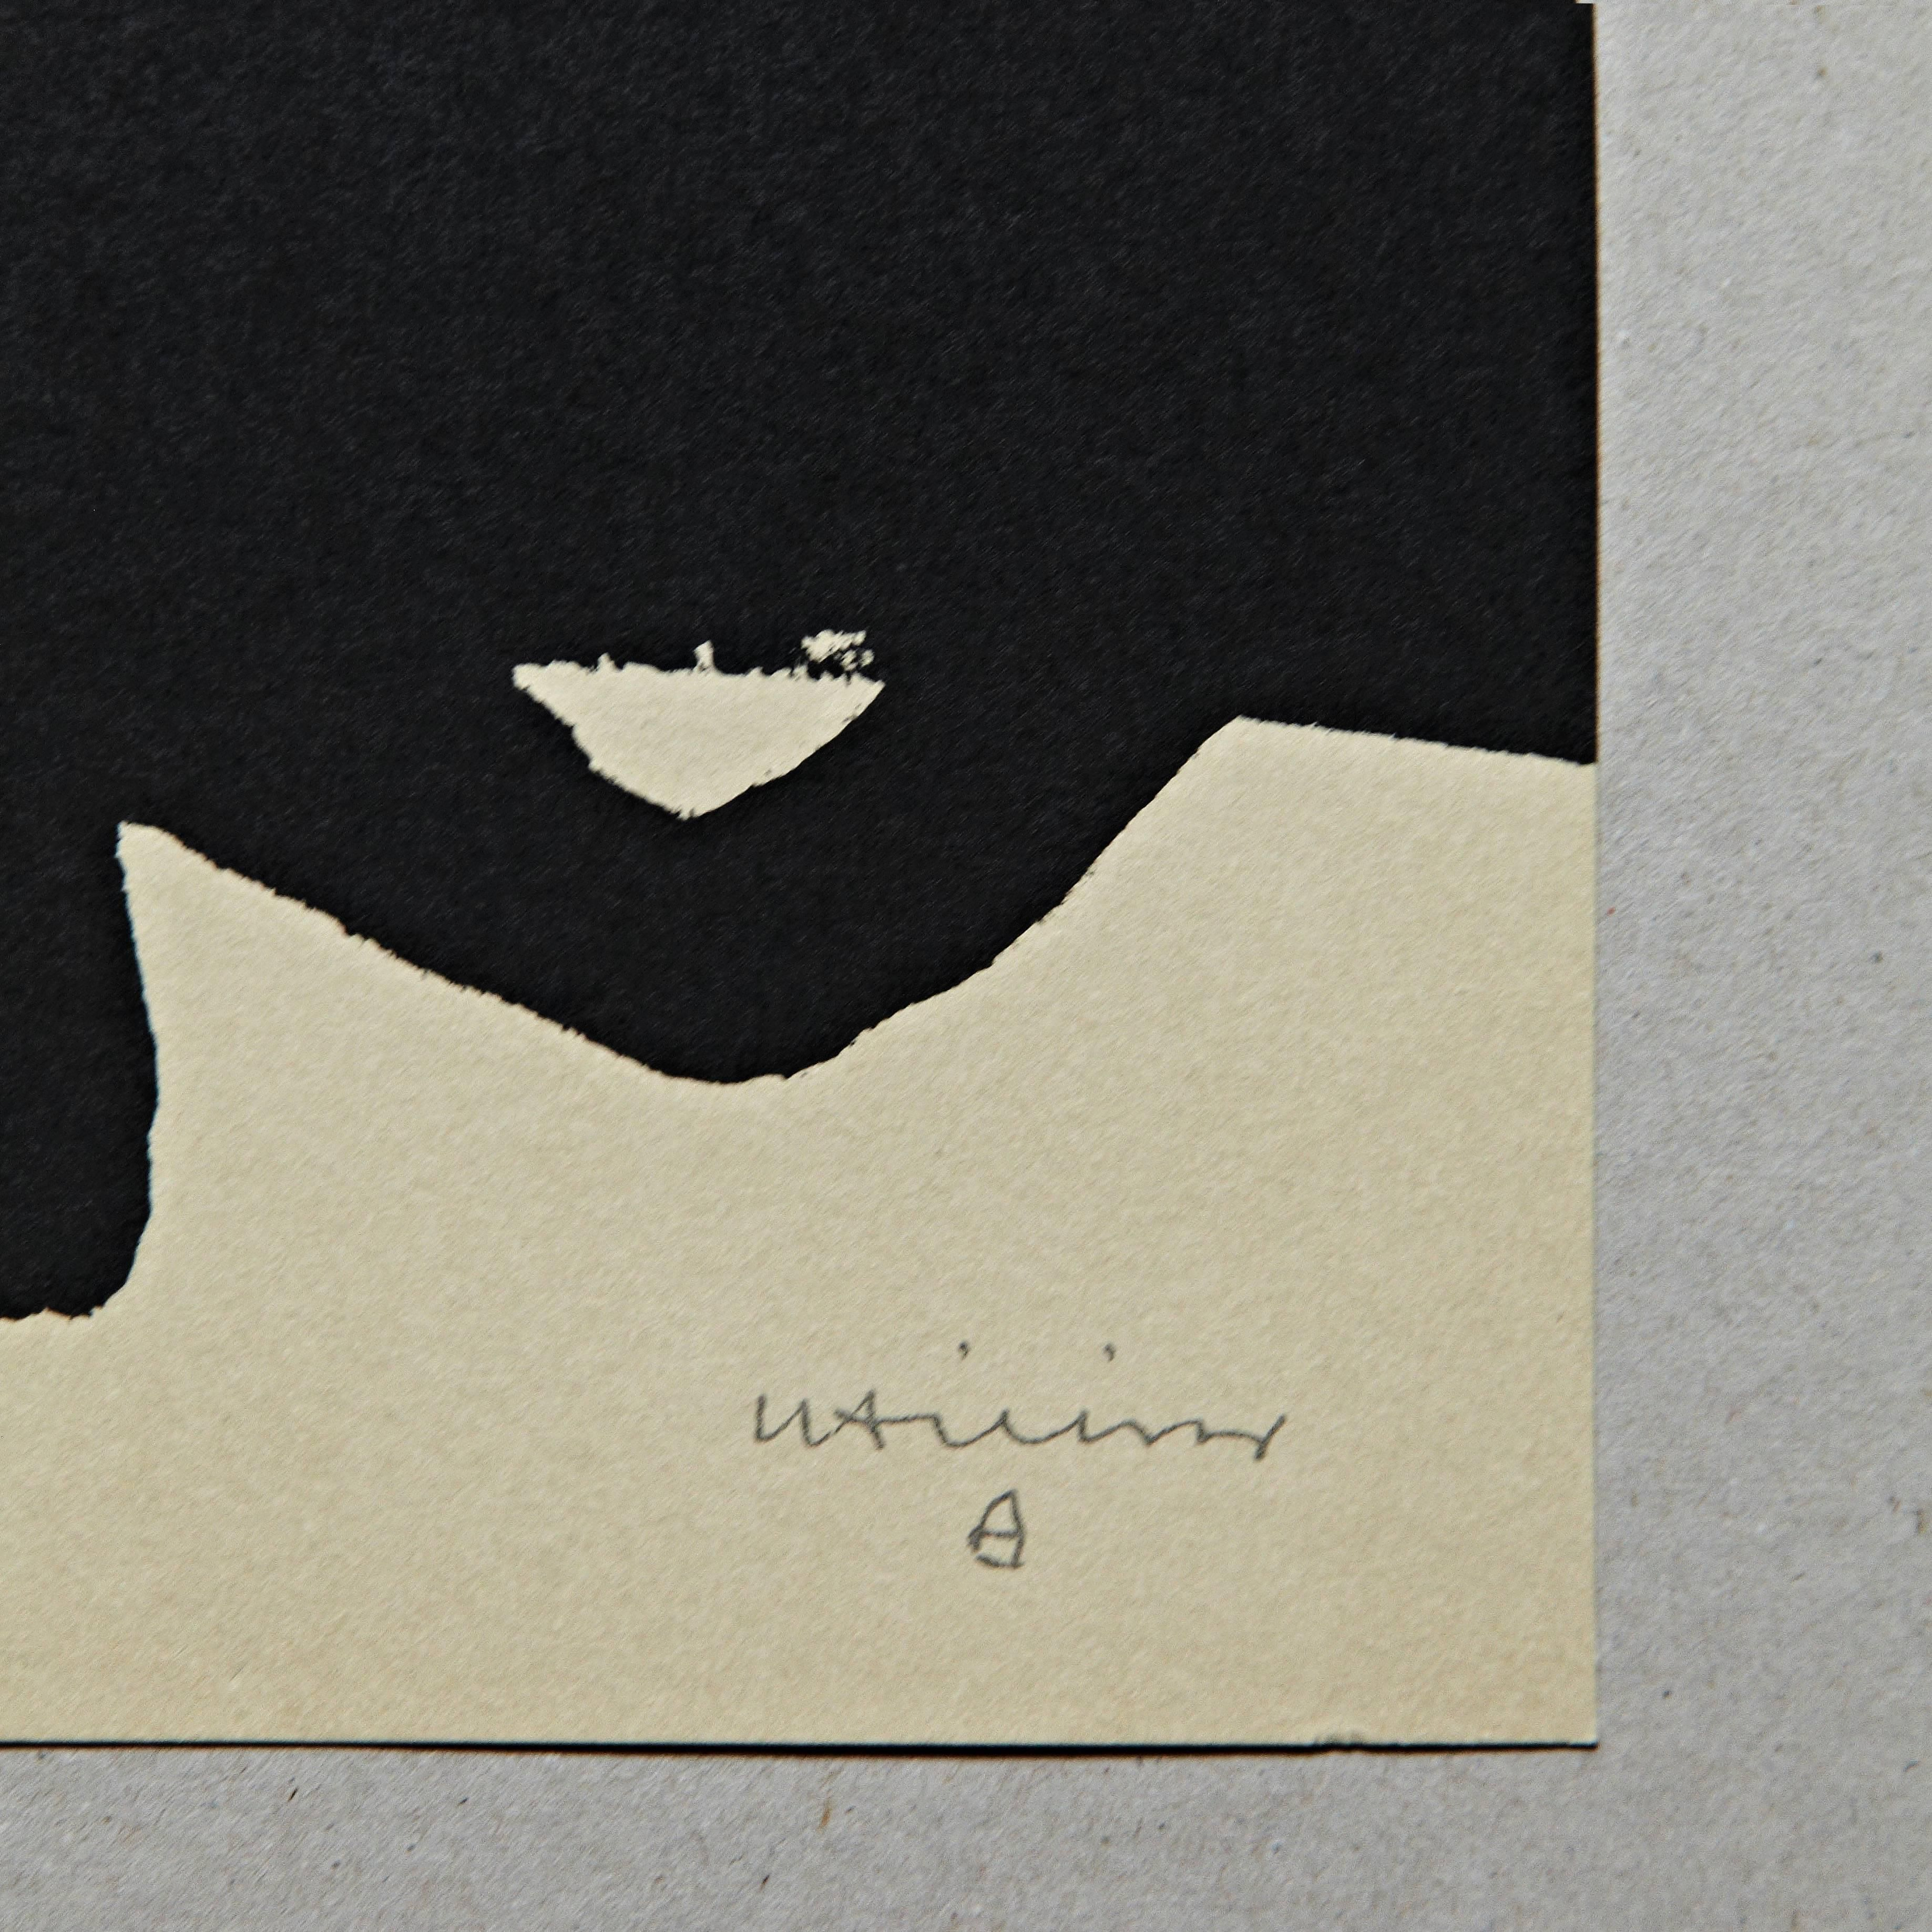 Eduardo Chillida Lithography Untitled For Sale At 1stdibs Lithography Prints Stone